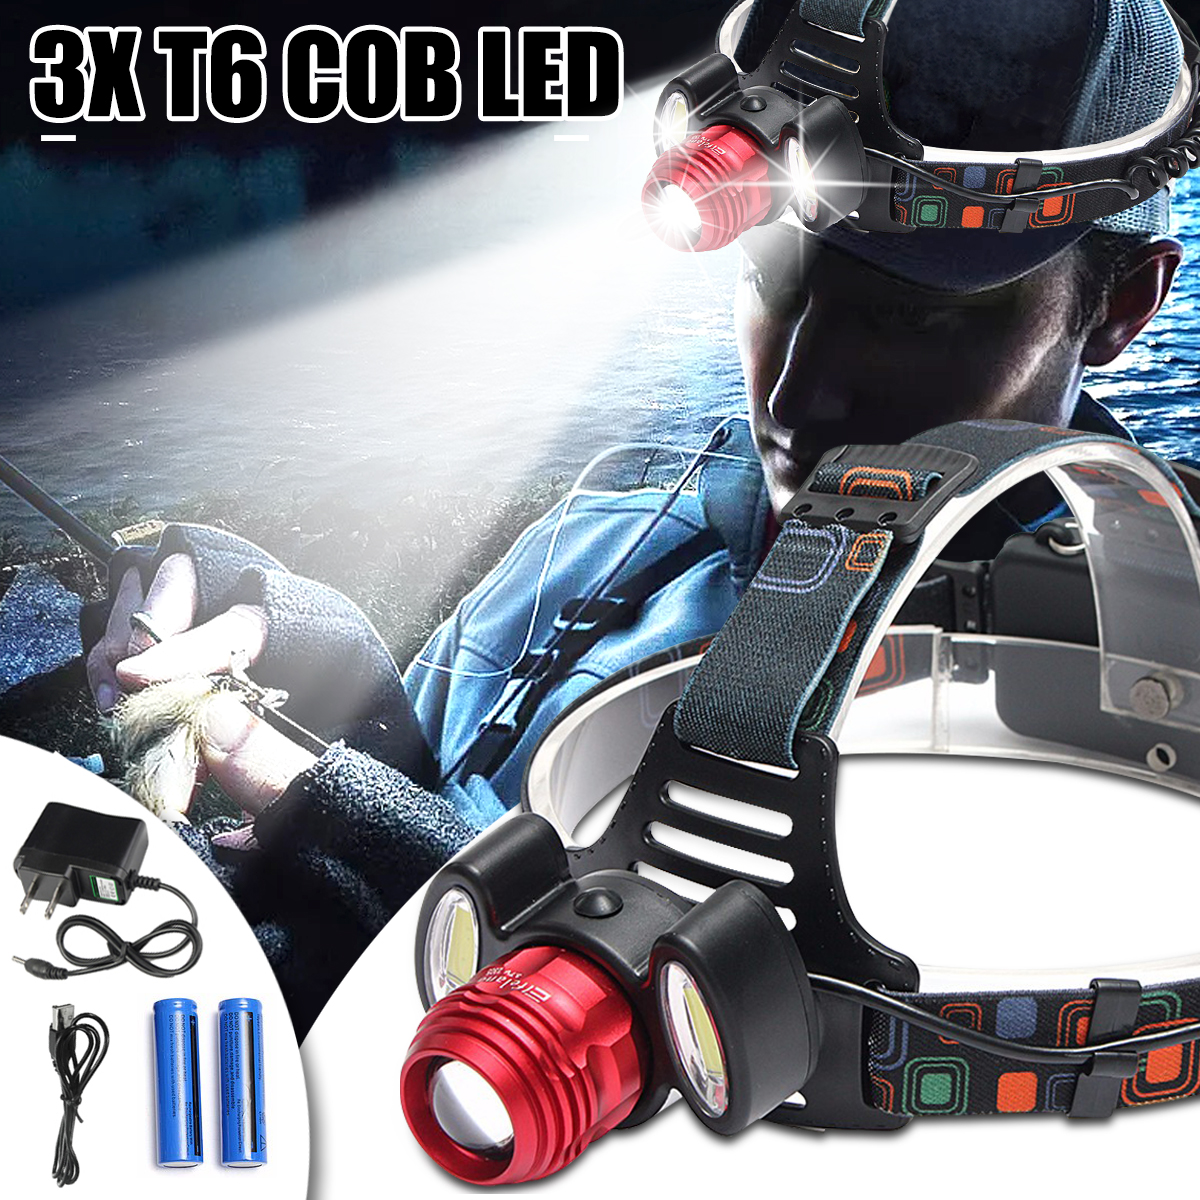 30000lm LED Headlamp 1*T6+2*COB Fishing Headlight Flashlight Torch Head Lamp Light 18650 Rechargeable For Camping Hunting cob led headlamp rechargeable cob headlight white red green lights 18650 battery head torch flashlight for hunting night fishing